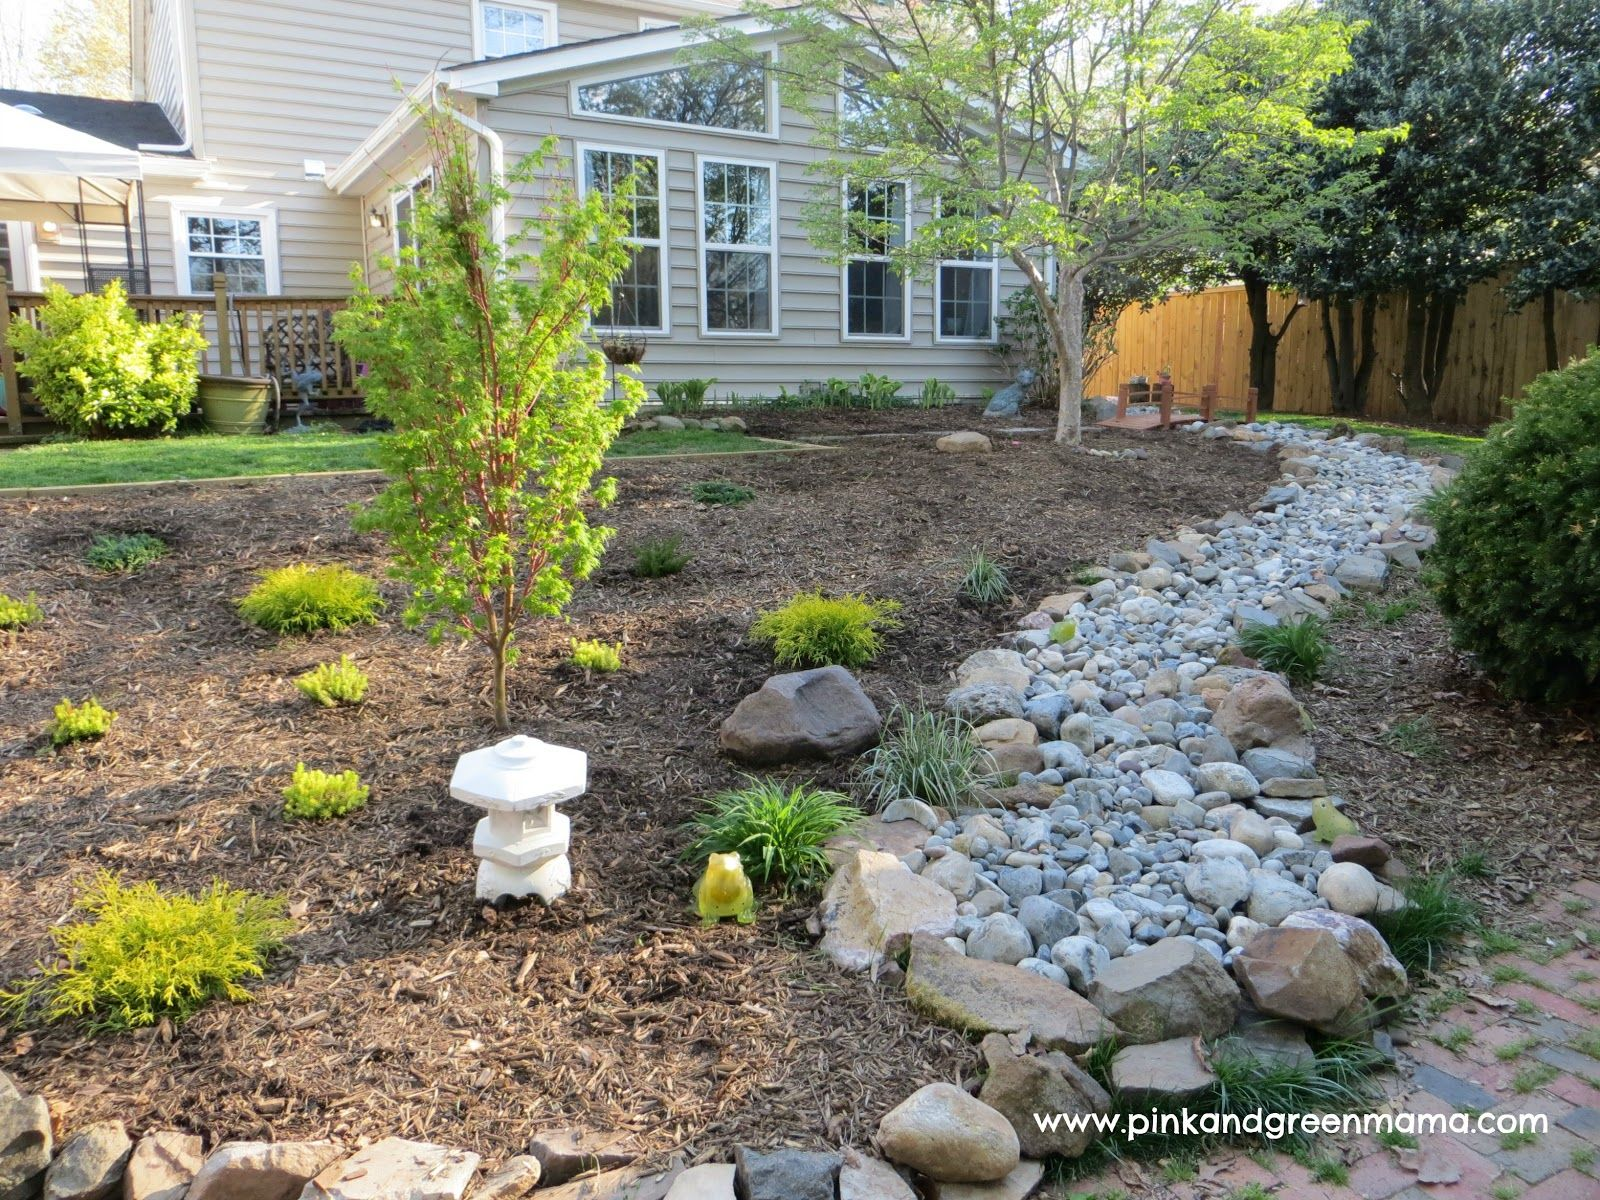 diy dry river bed backyard makeover on a budget from pink and